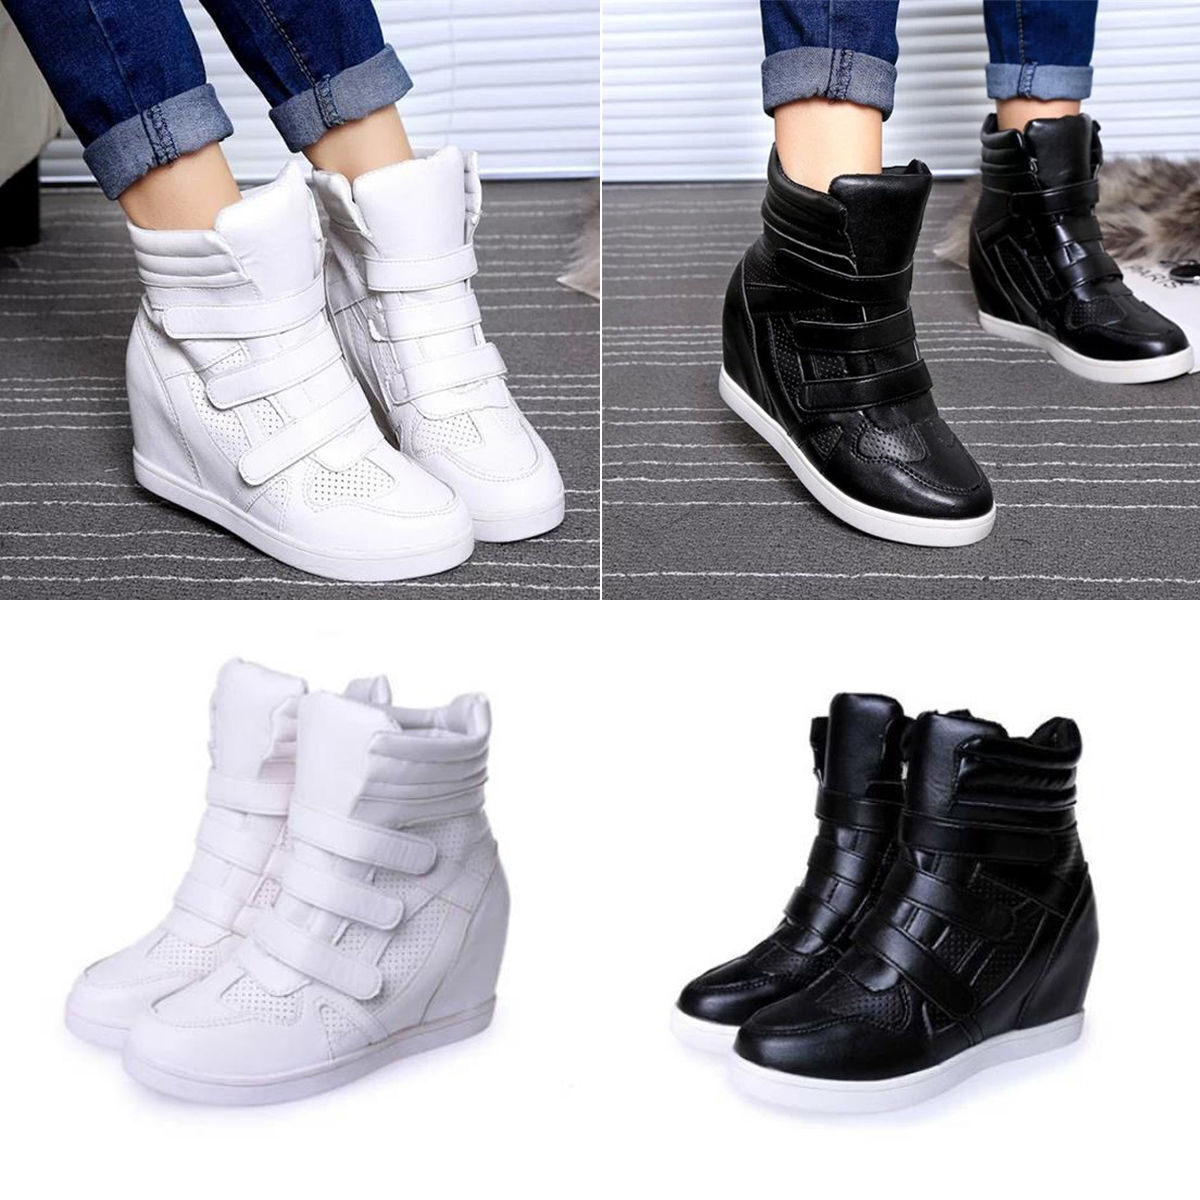 2017 FASHION Women's Ankle Boots High Top Wedge Hidden ...